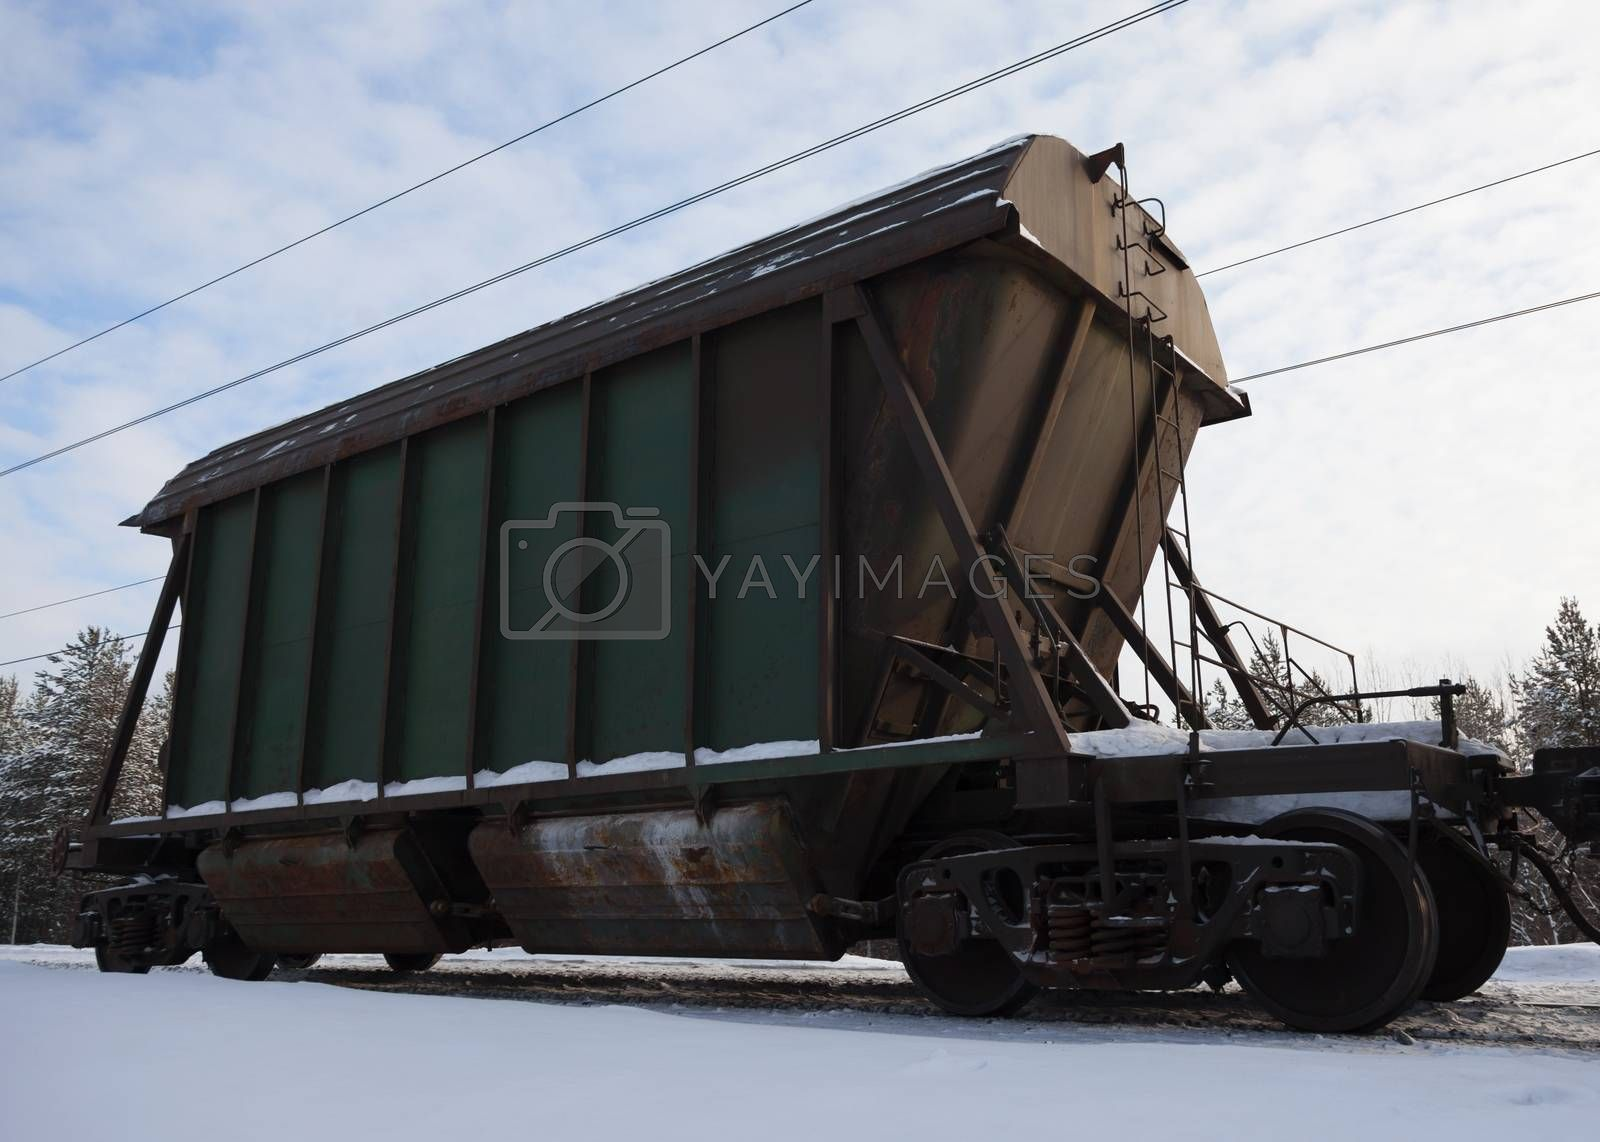 The last car of a freight train on the background of white snow.